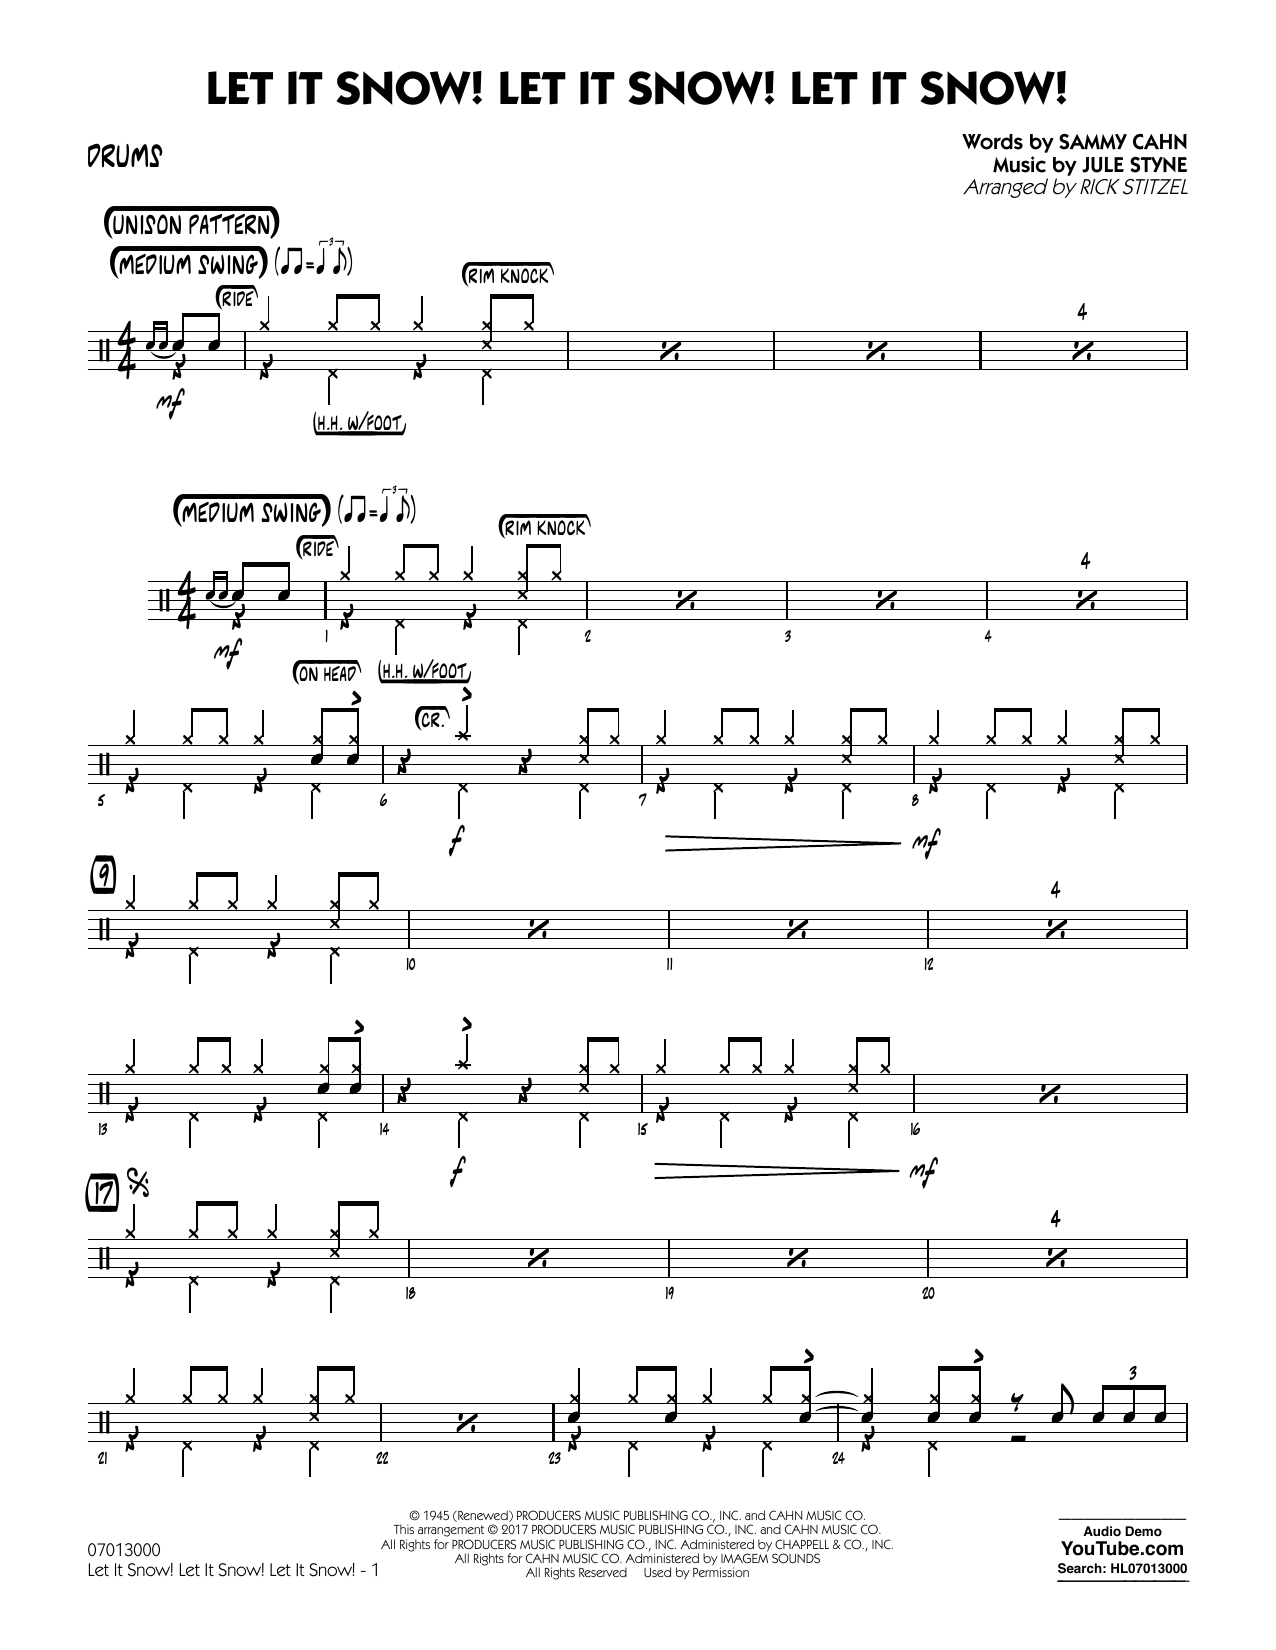 Let It Snow! Let It Snow! Let It Snow! - Drums Sheet Music